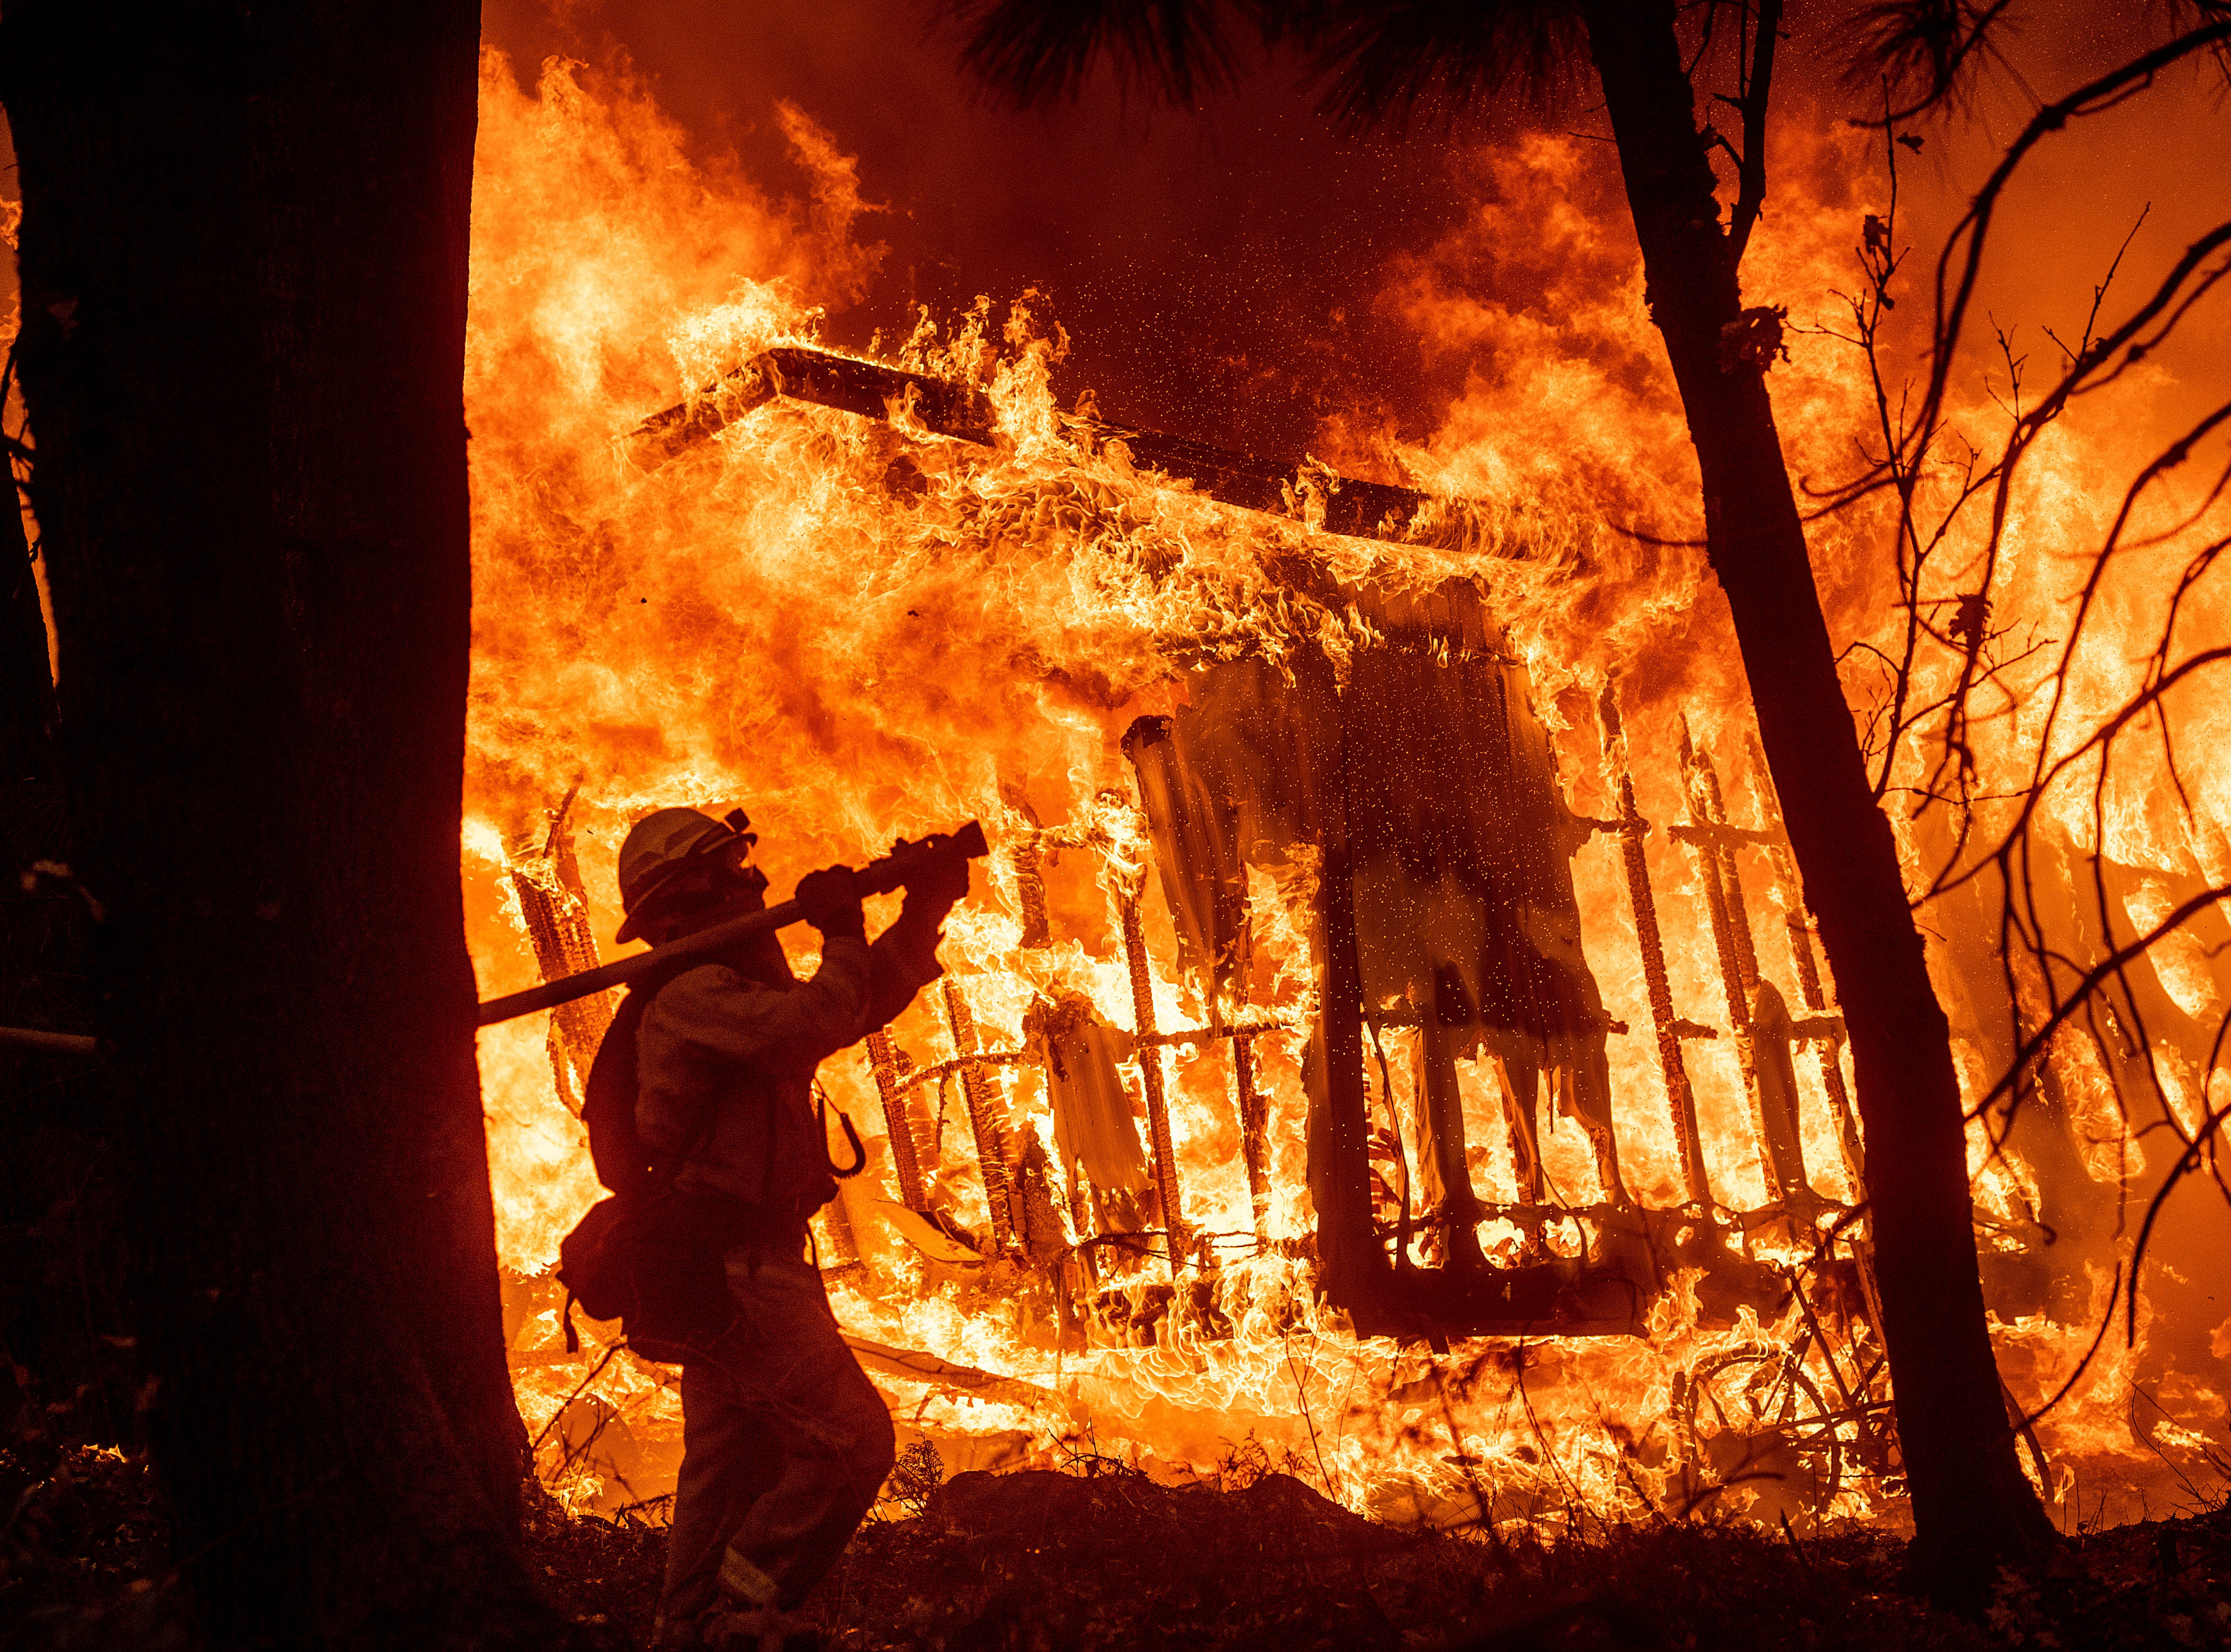 Firefighter Jose Corona sprays water as flames from the Camp Fire consume a home in Magalia, Calif., on Friday, Nov. 9, 2018.